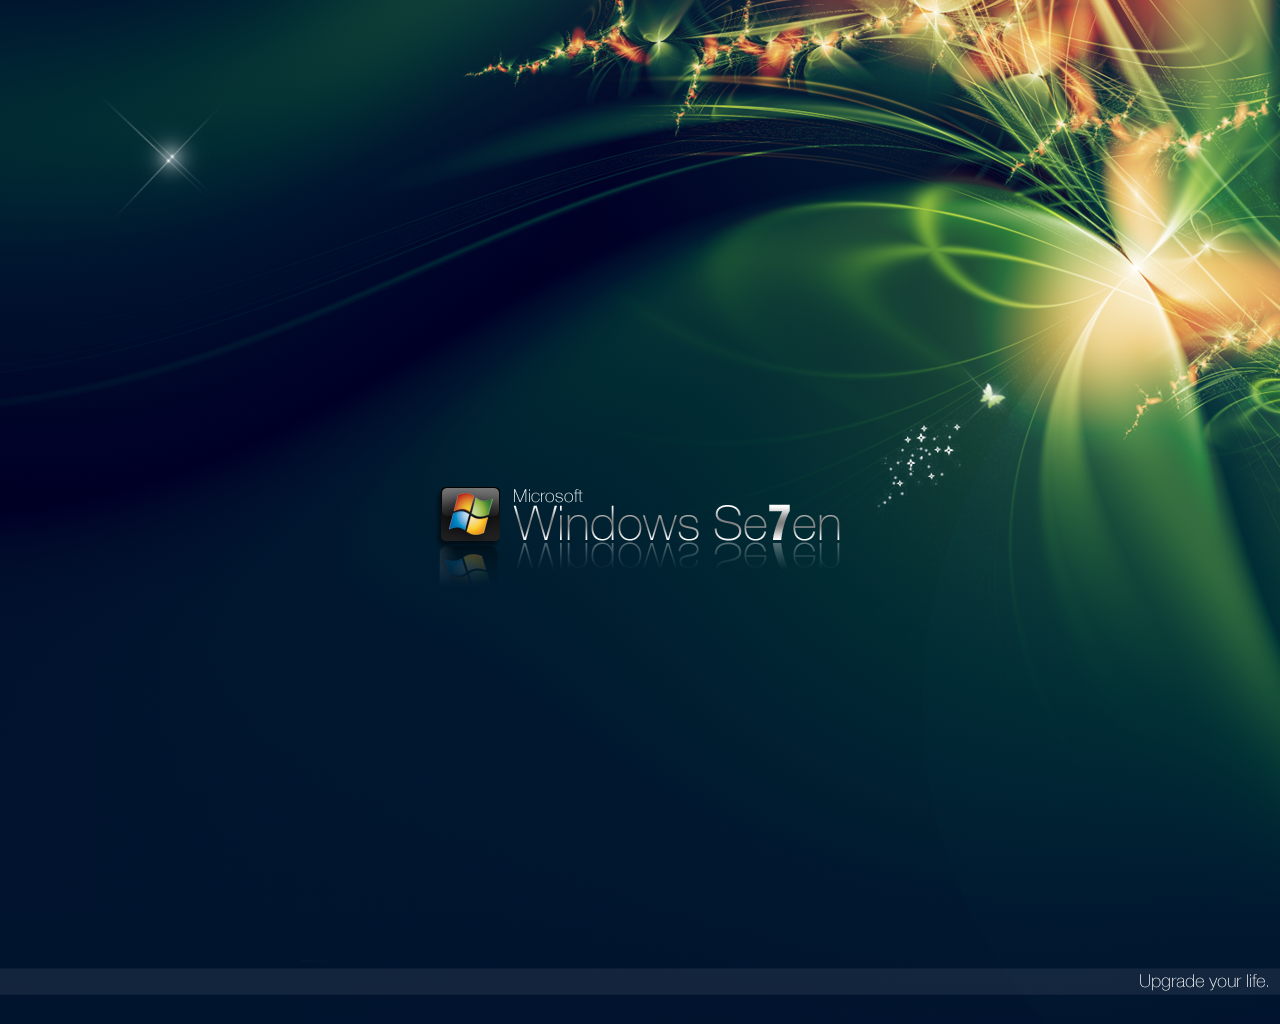 High quality windows 7 wallpapers for High quality windows